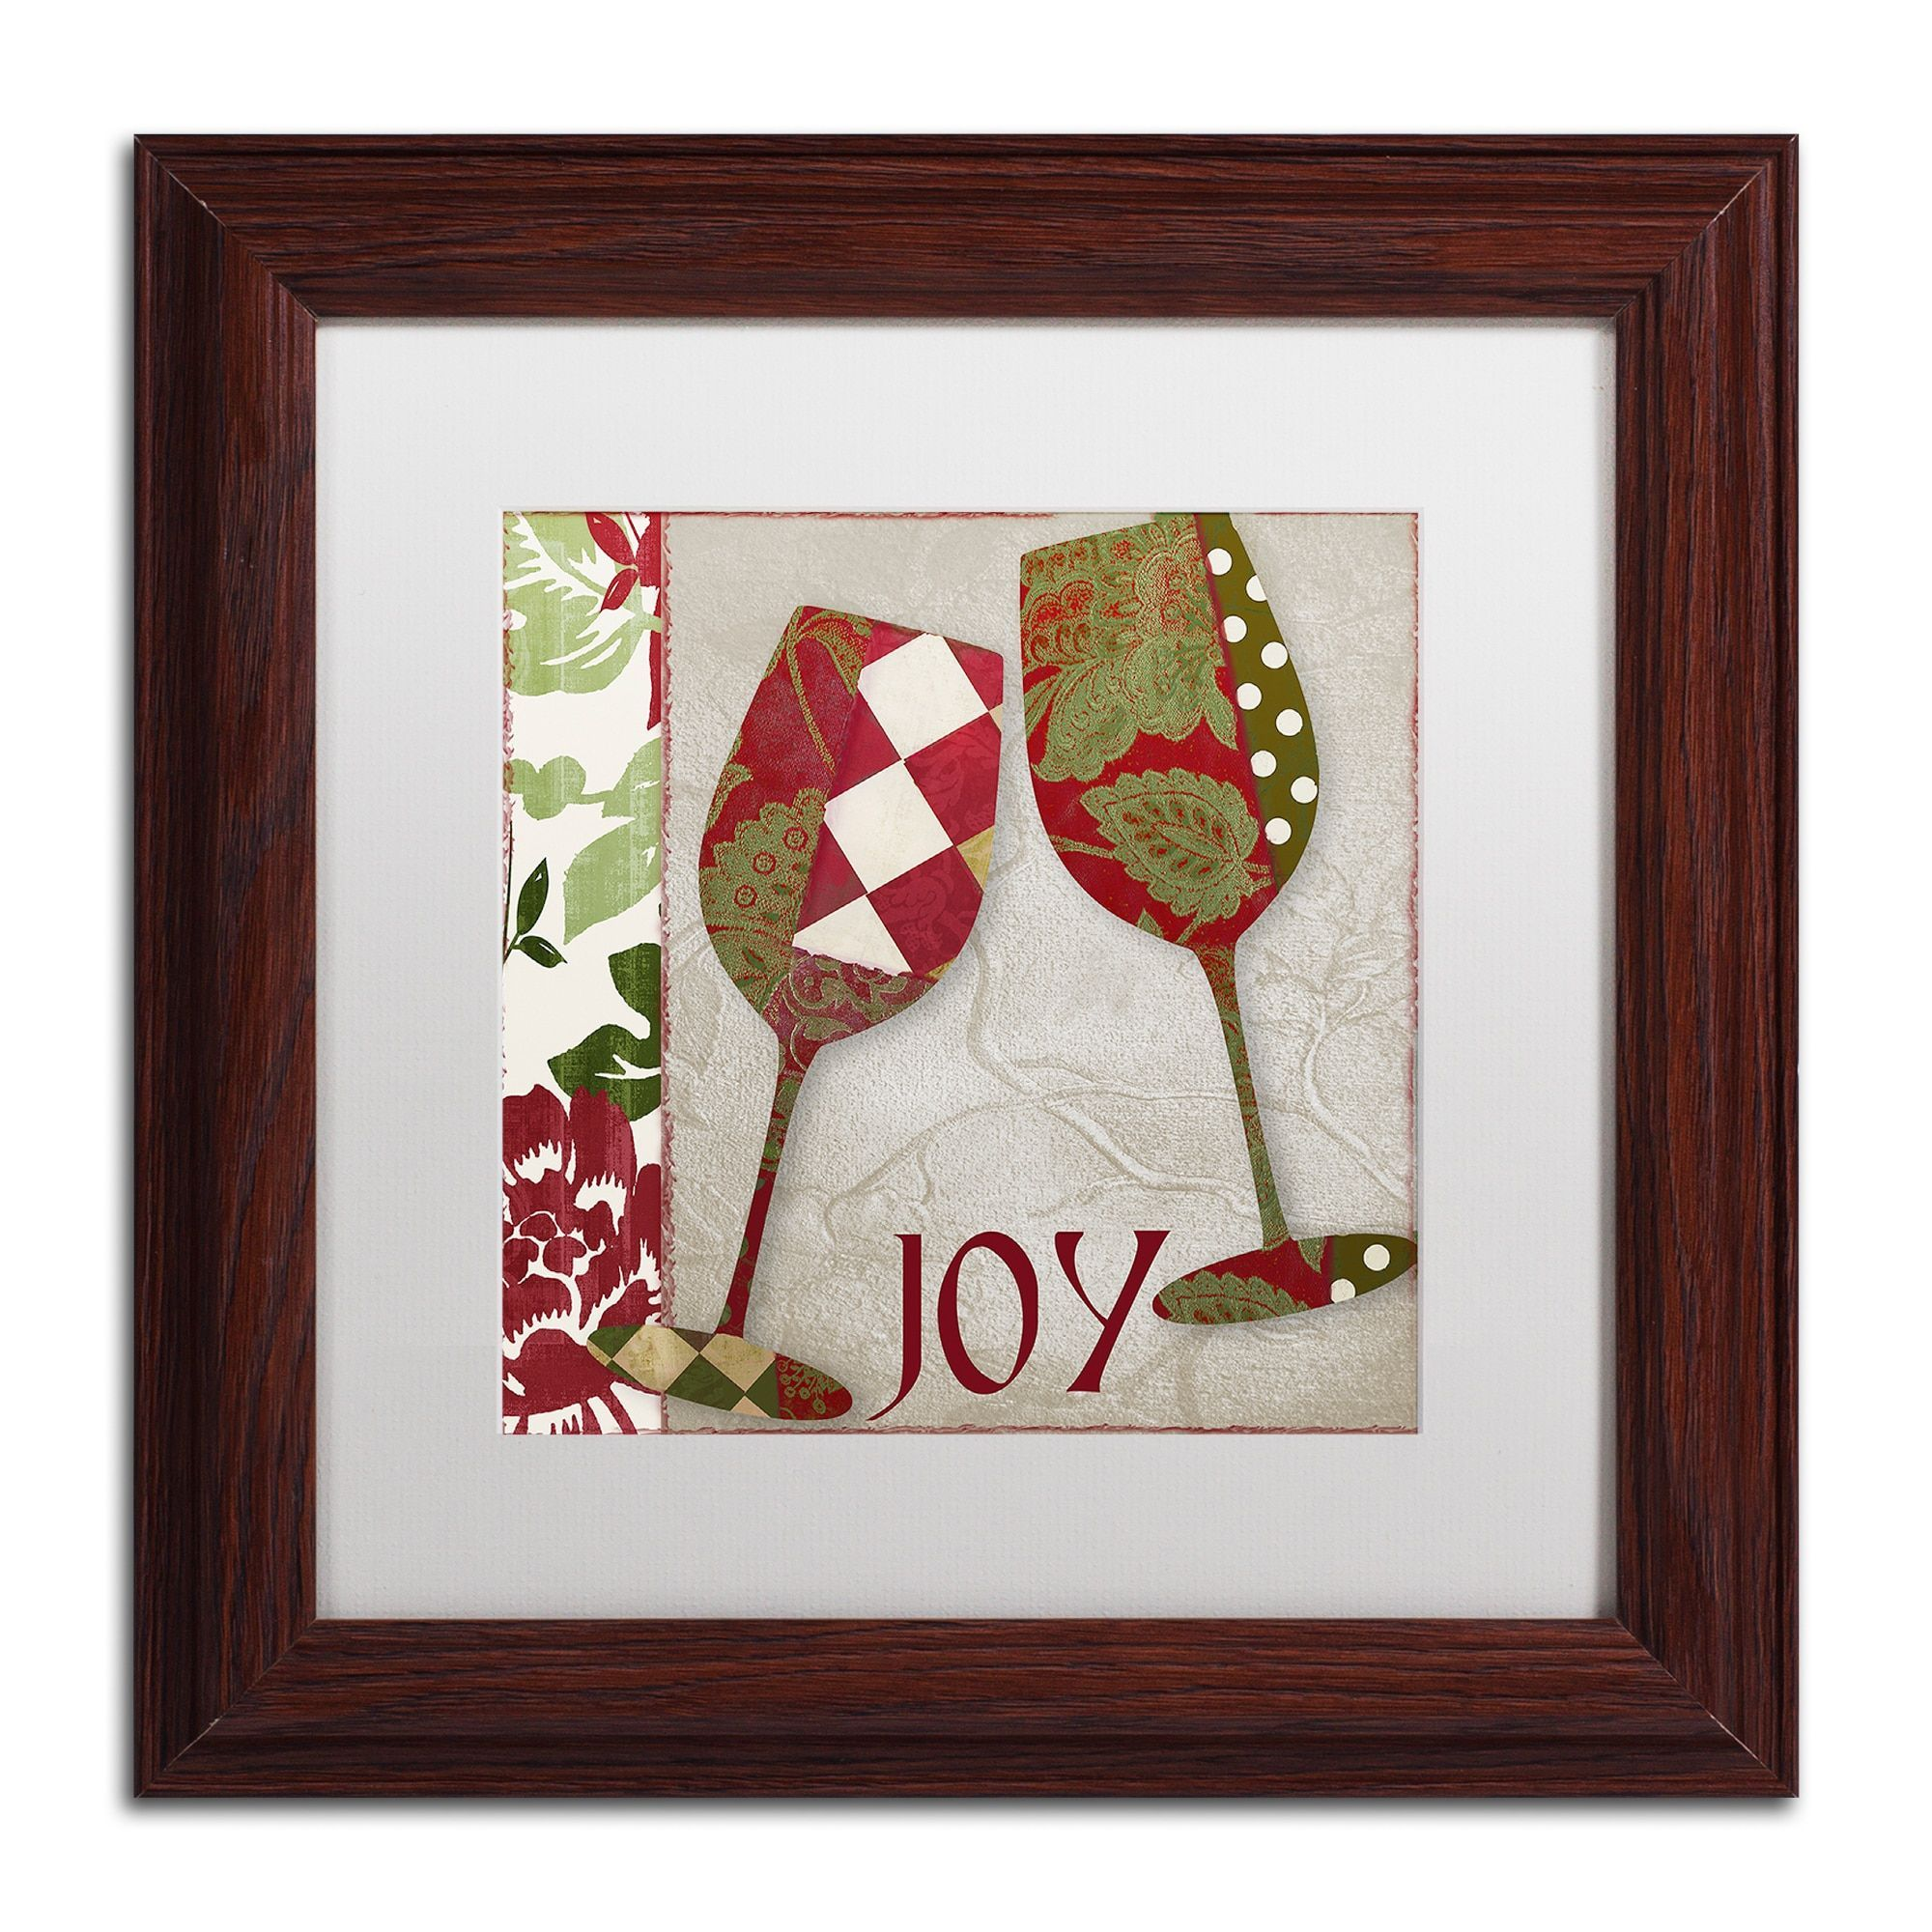 Color Bakery 'Holiday Cheer One' Matted Framed Art